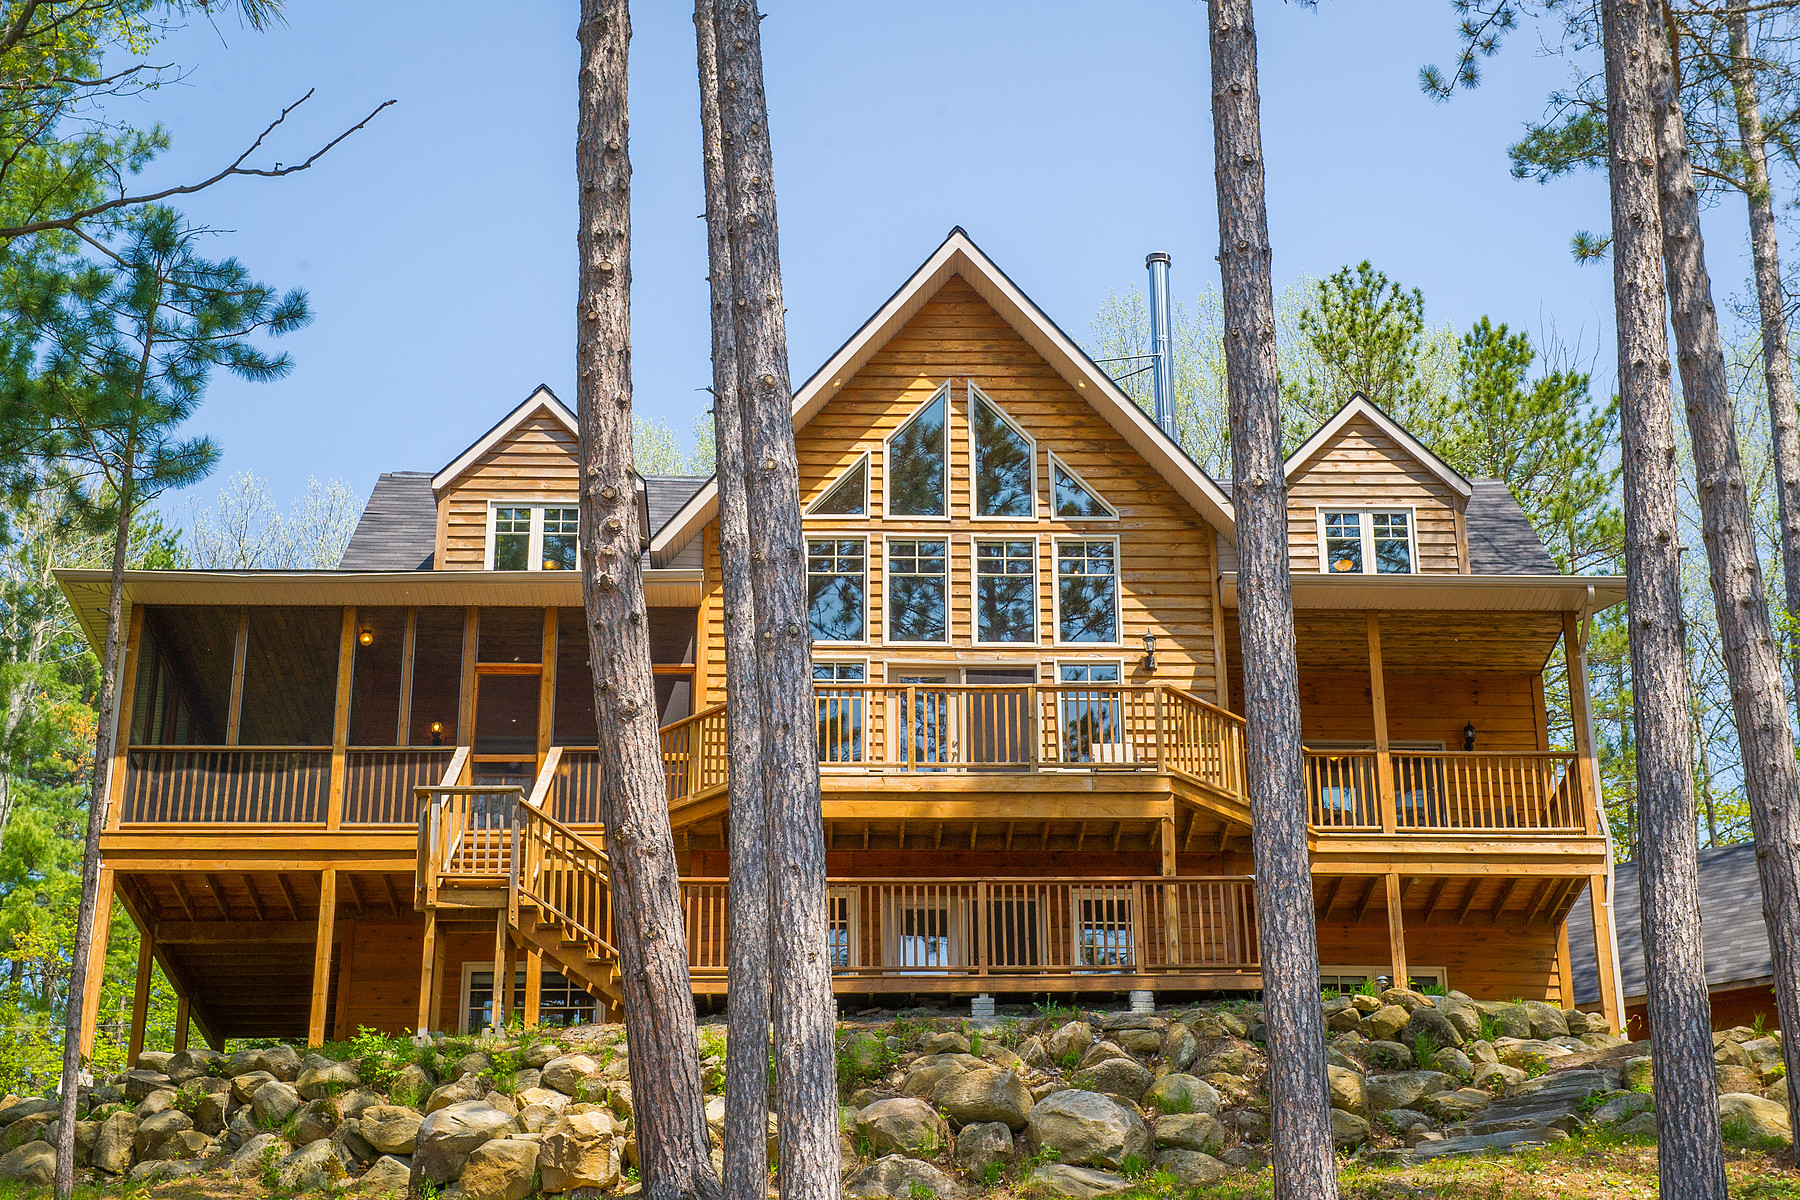 Single Family Home for Sale at 6 Bedrm Waterfront Home 147 Gall Trail Huntsville, Ontario, P0B 1M0 Canada